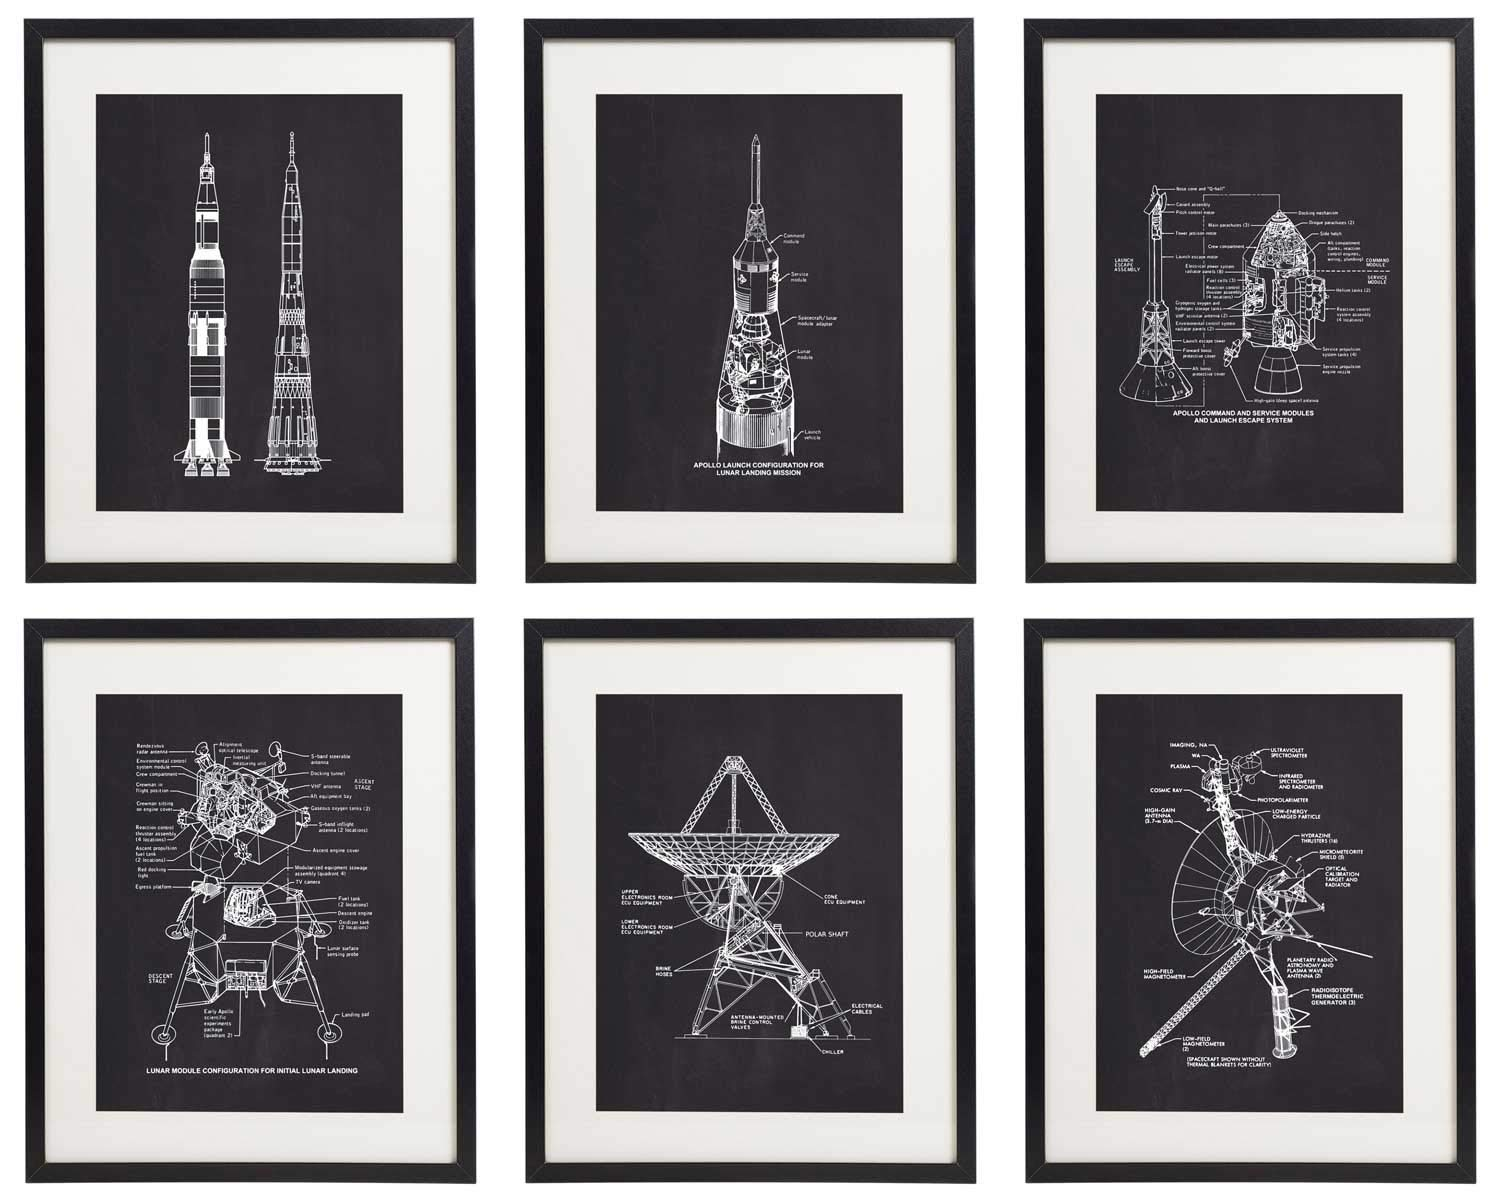 IDIOPIX Space Patent Prints Home Decor Chalkboard Art Print Set of 6 Prints UNFRAMED No.3